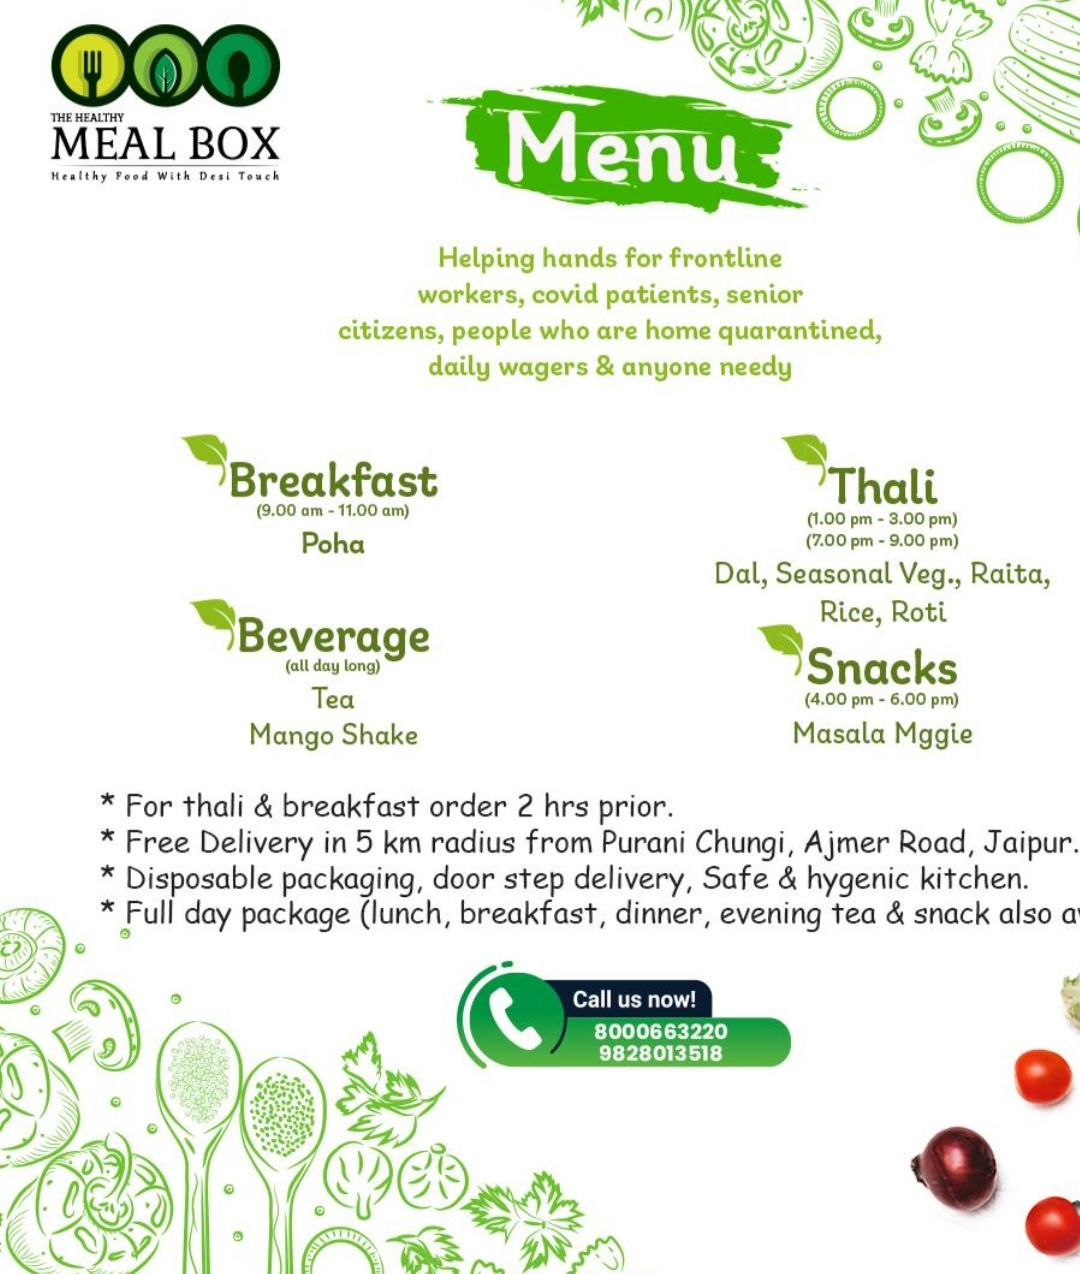 The Healthy Meal box